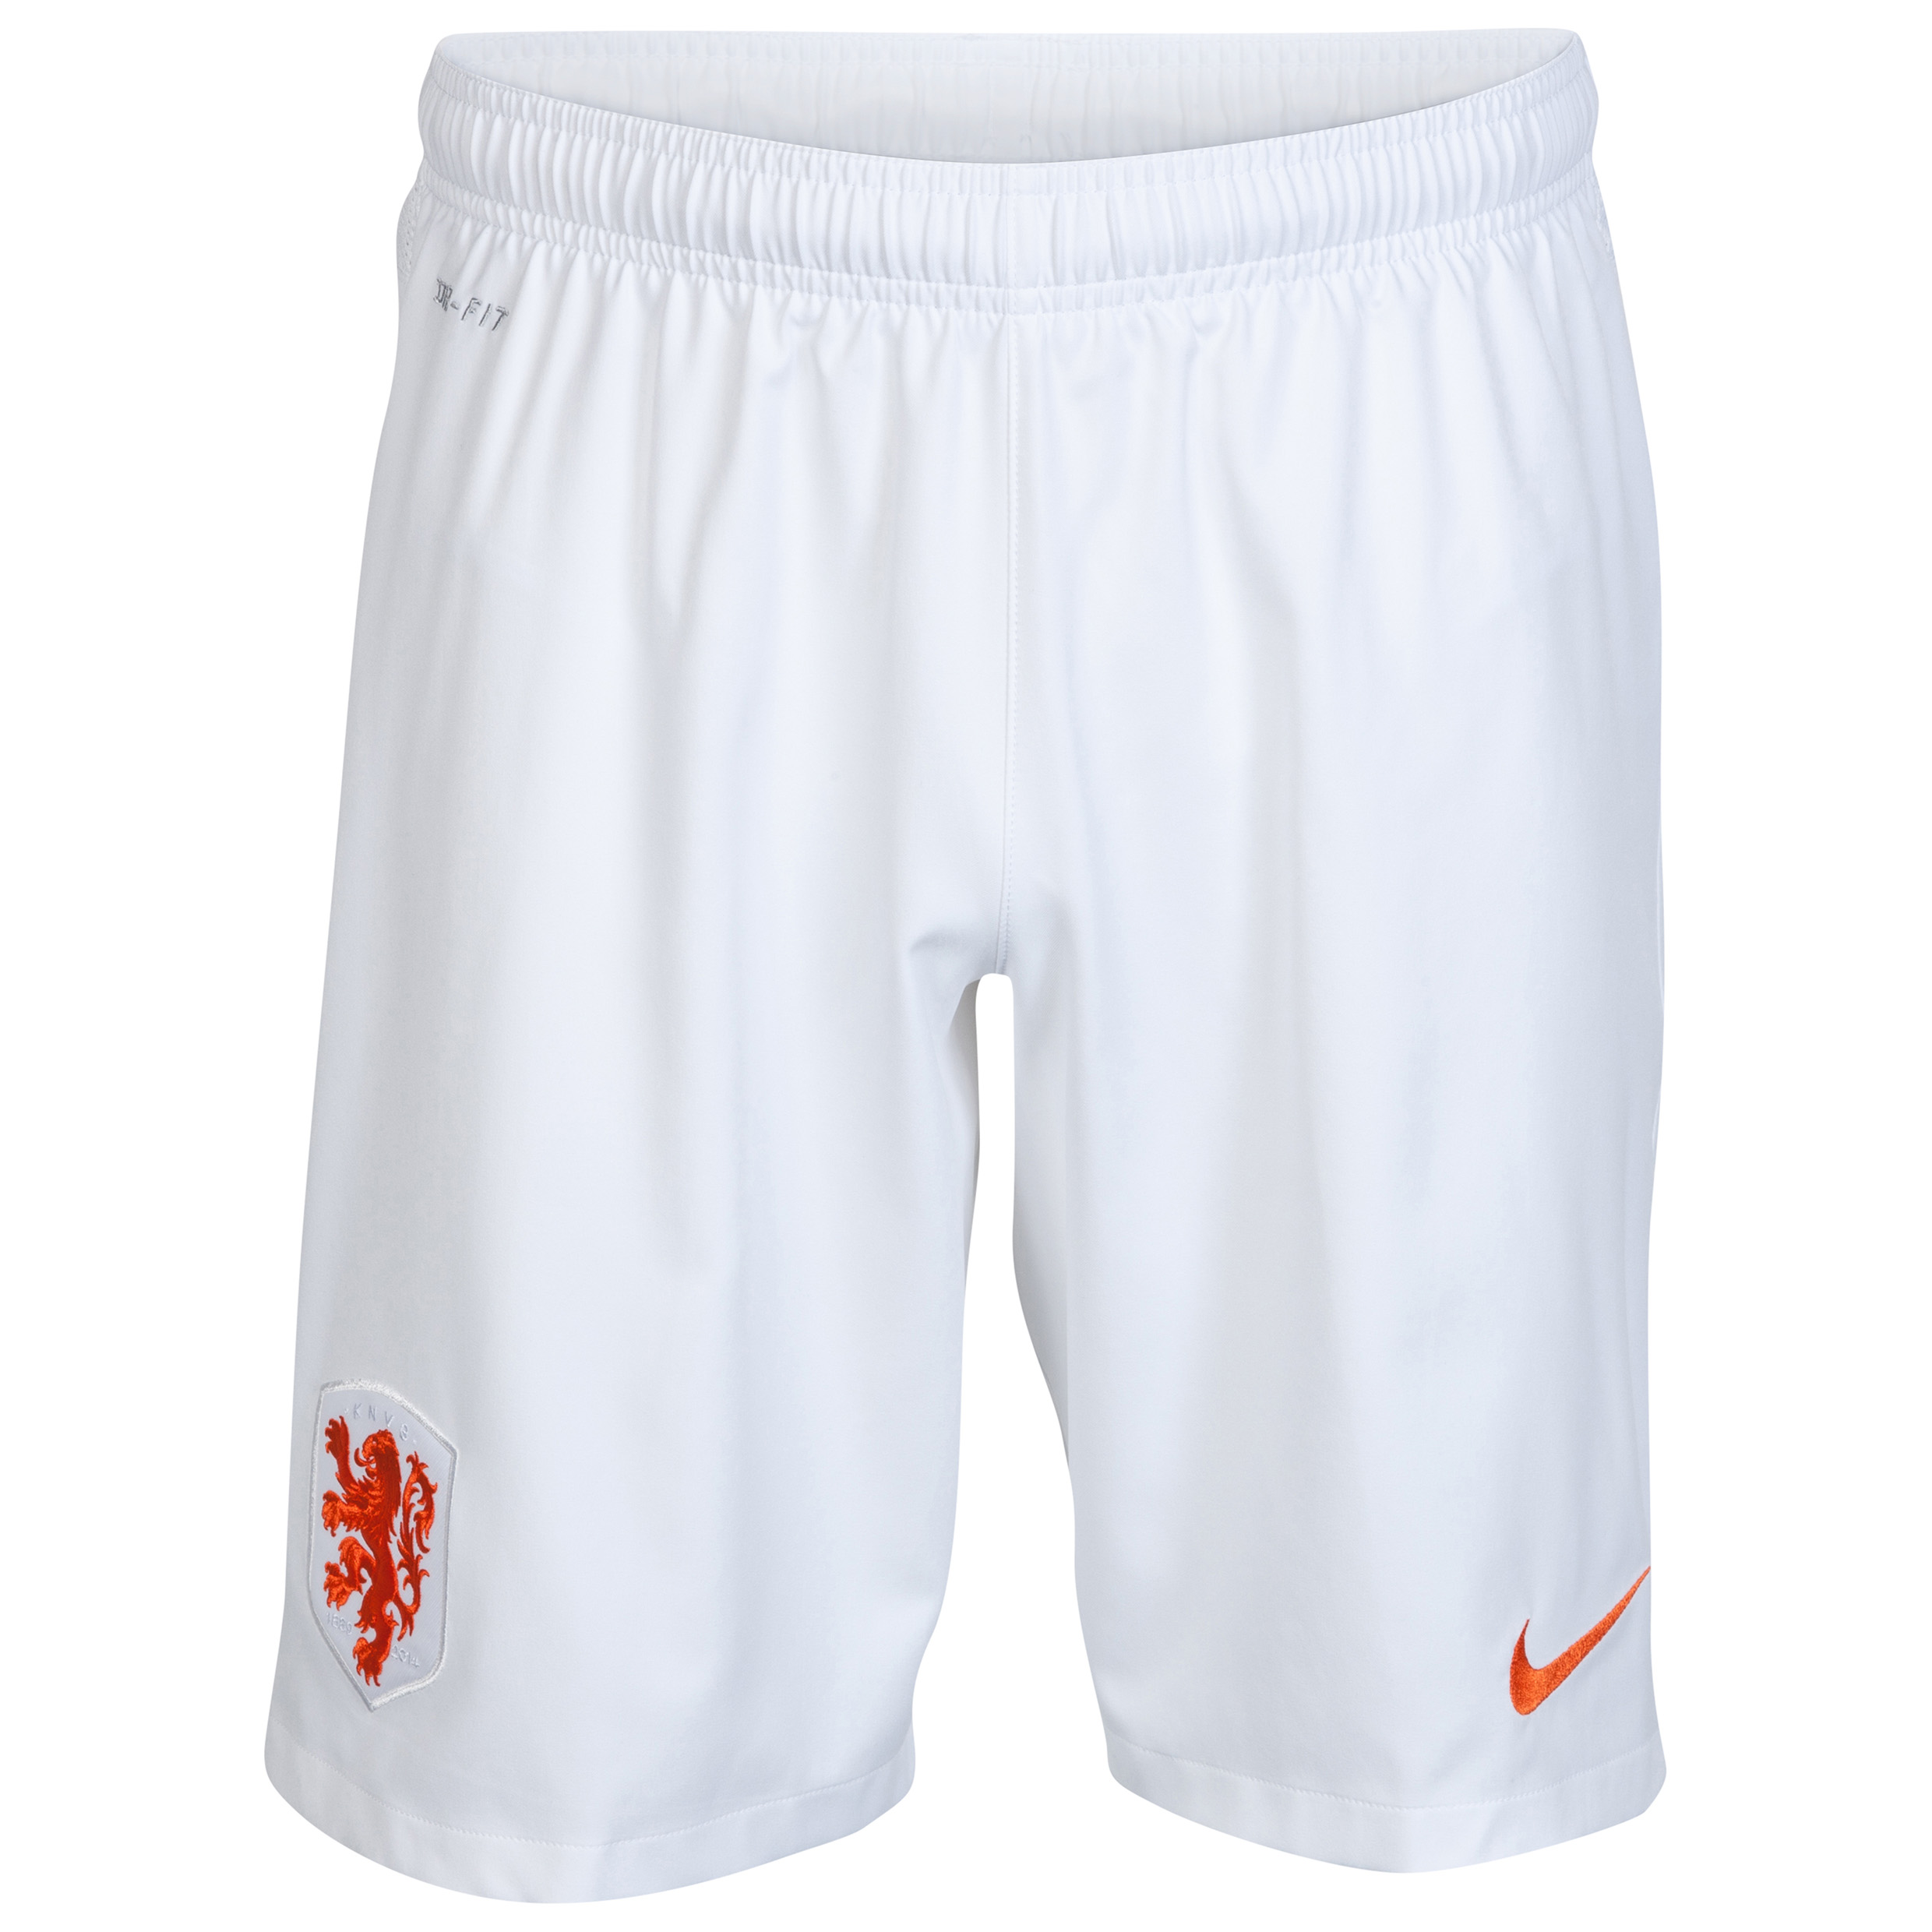 Netherlands Home Shorts 2014/15 White